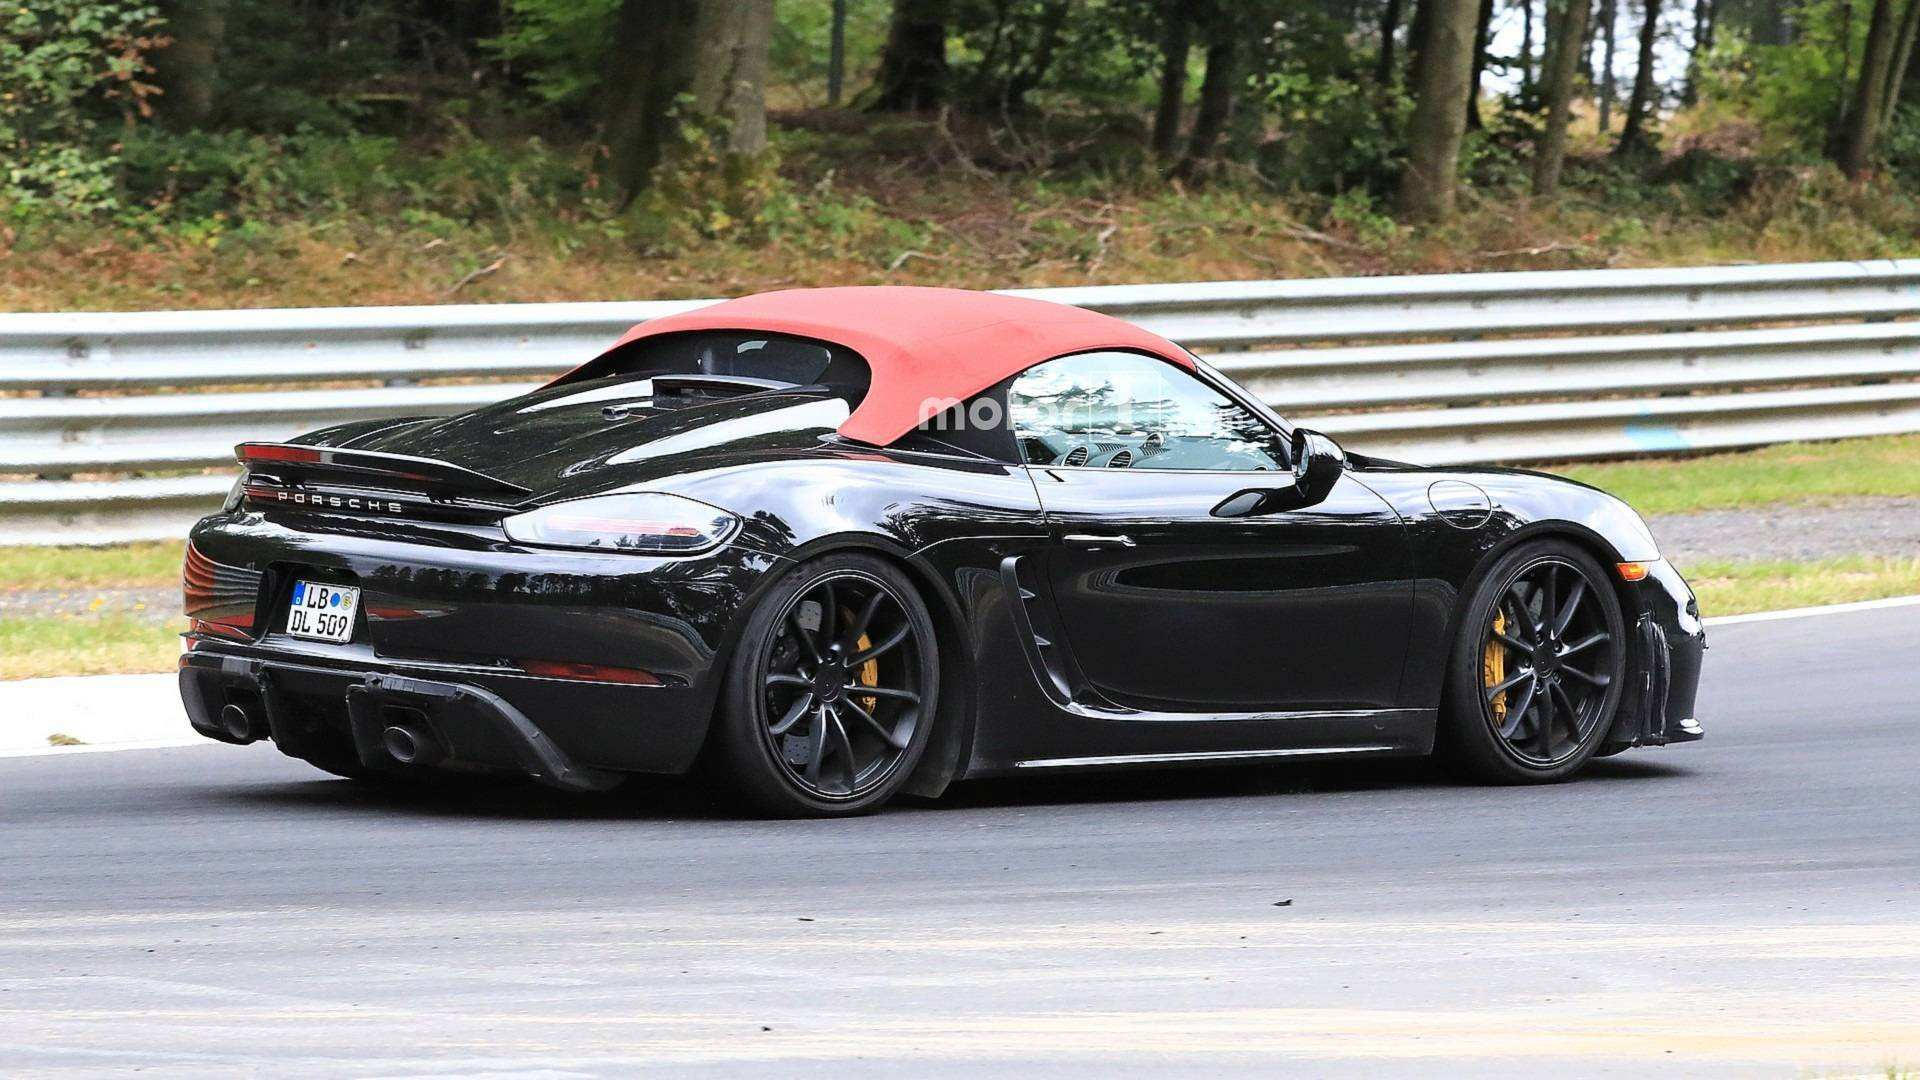 71 Gallery of 2019 Porsche Boxster Spyder Style with 2019 Porsche Boxster Spyder